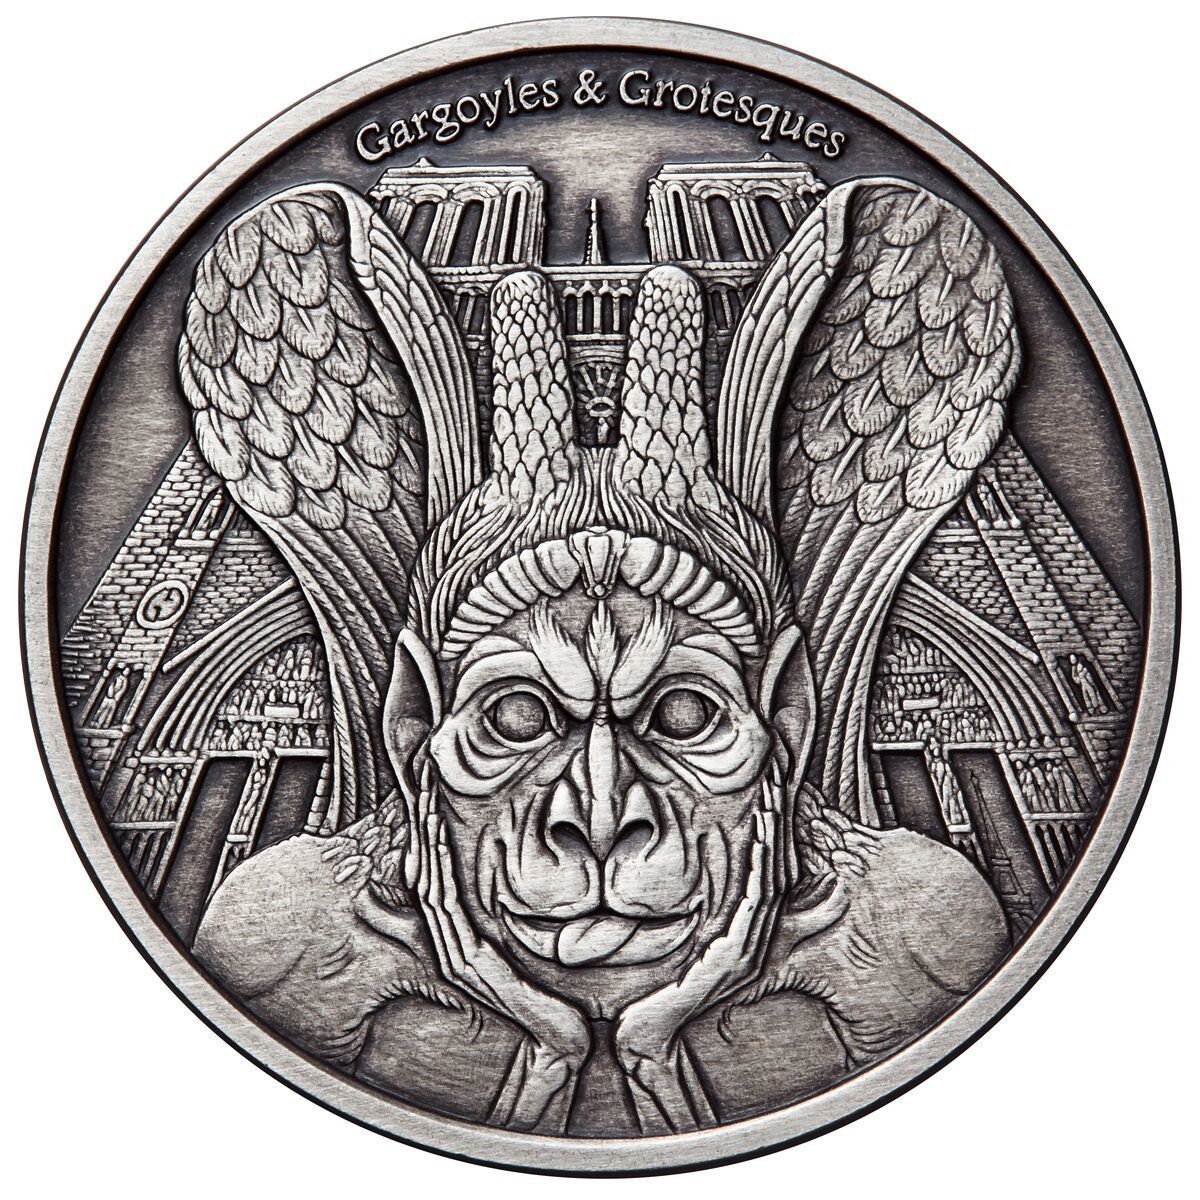 SPITTER Gargoyles & Grotesques Paris Notre Dame AF 1 Oz Silver Coin Chad 2017